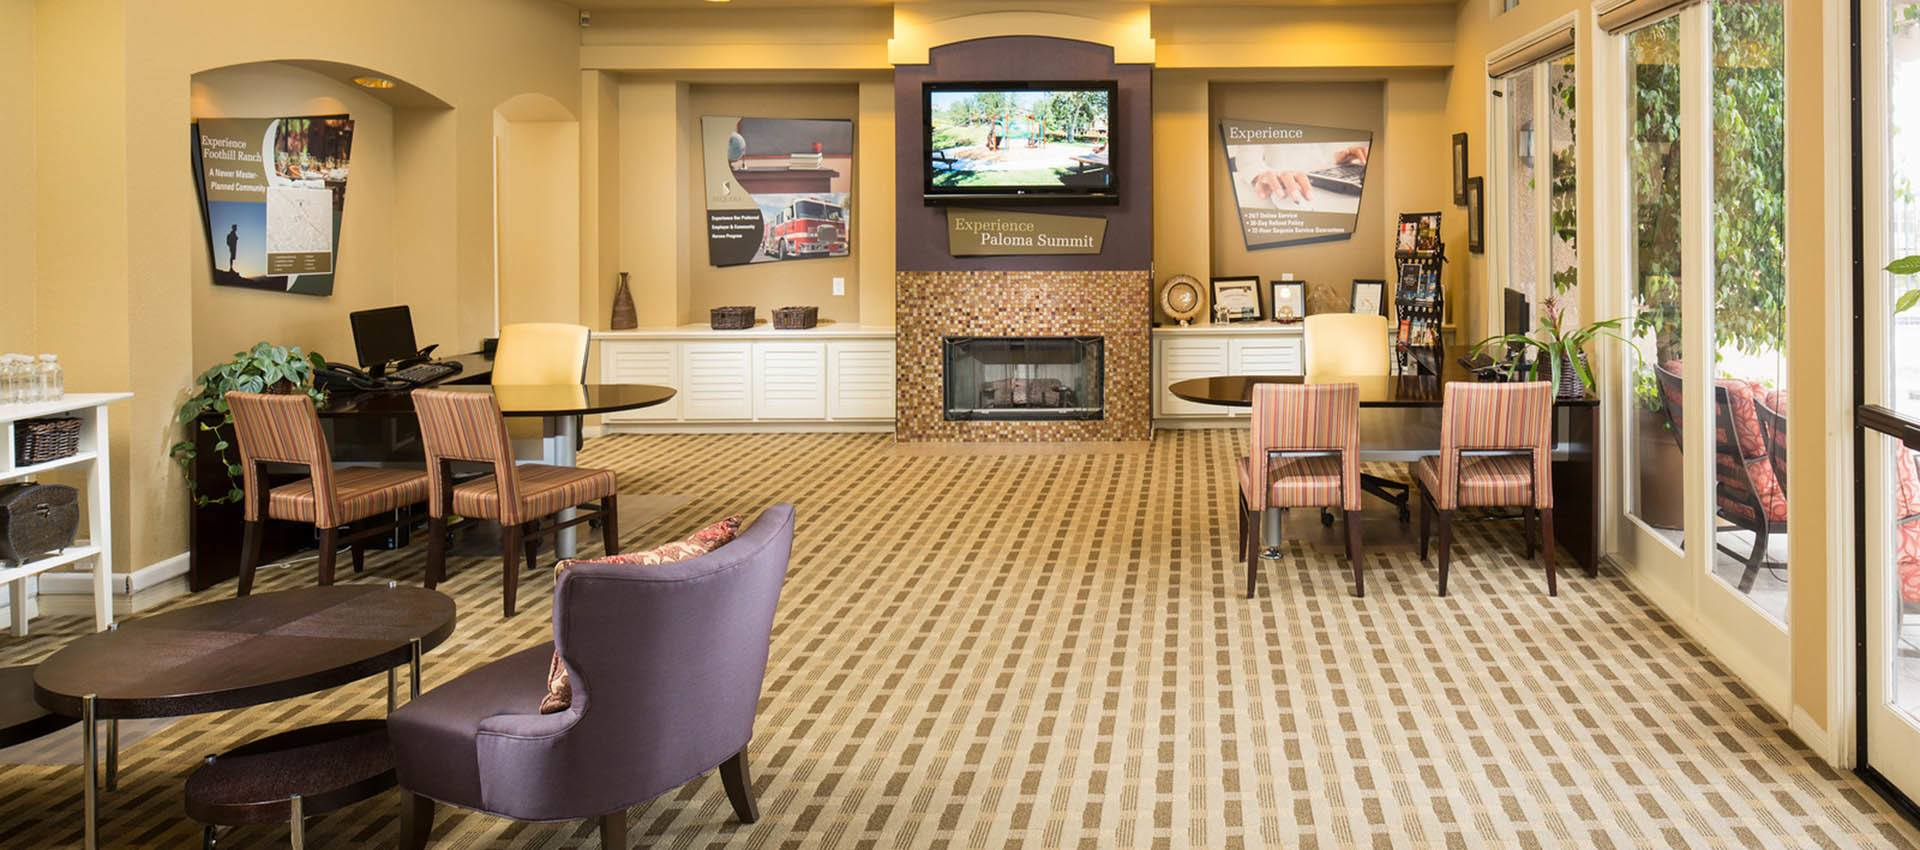 Clubhouse Lobby at Paloma Summit Condominium Rentals in Foothill Ranch, CA